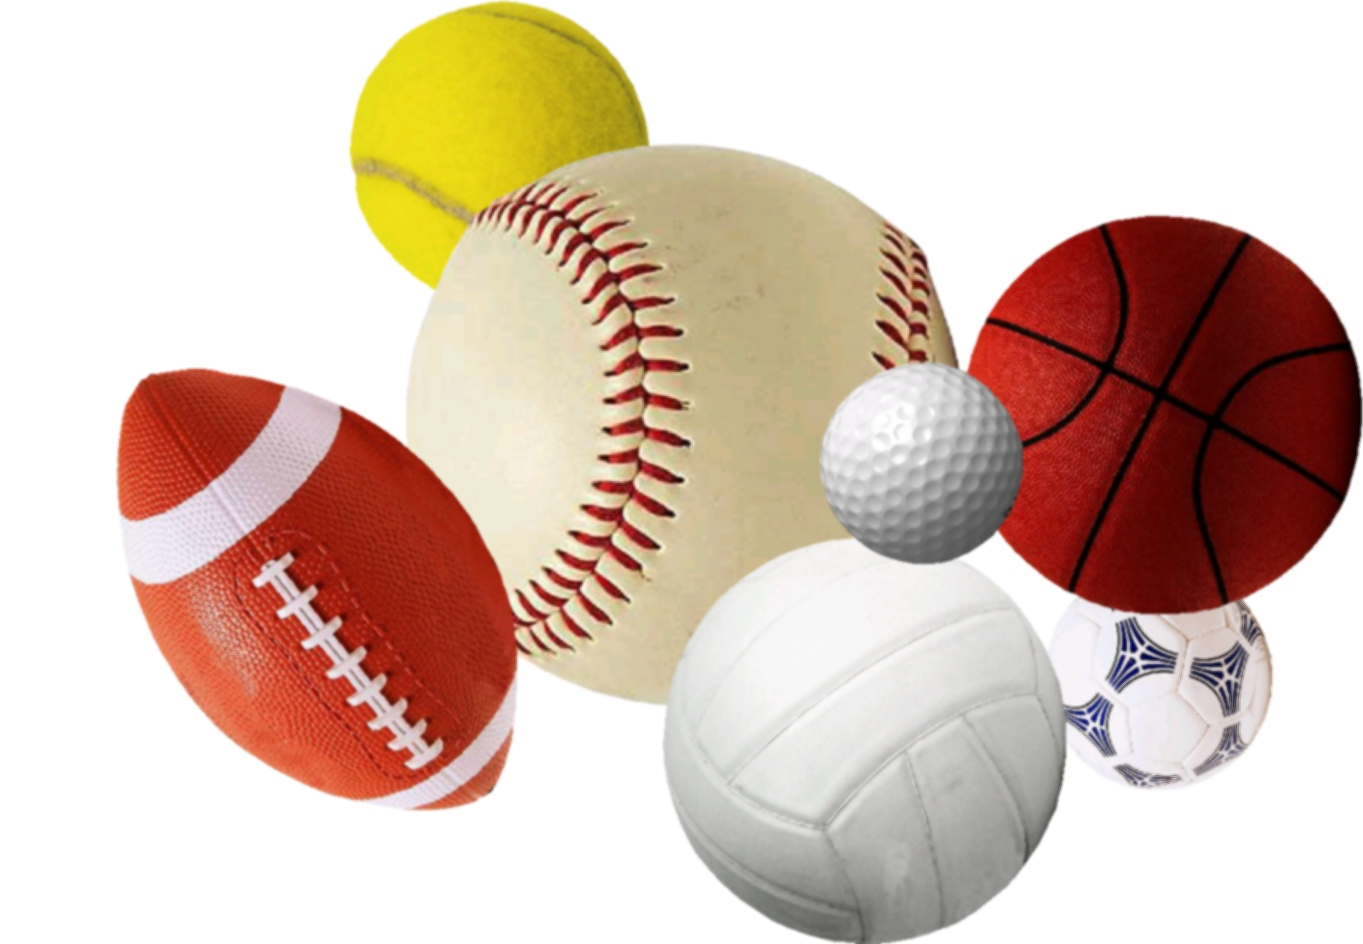 all sports balls related - photo #29